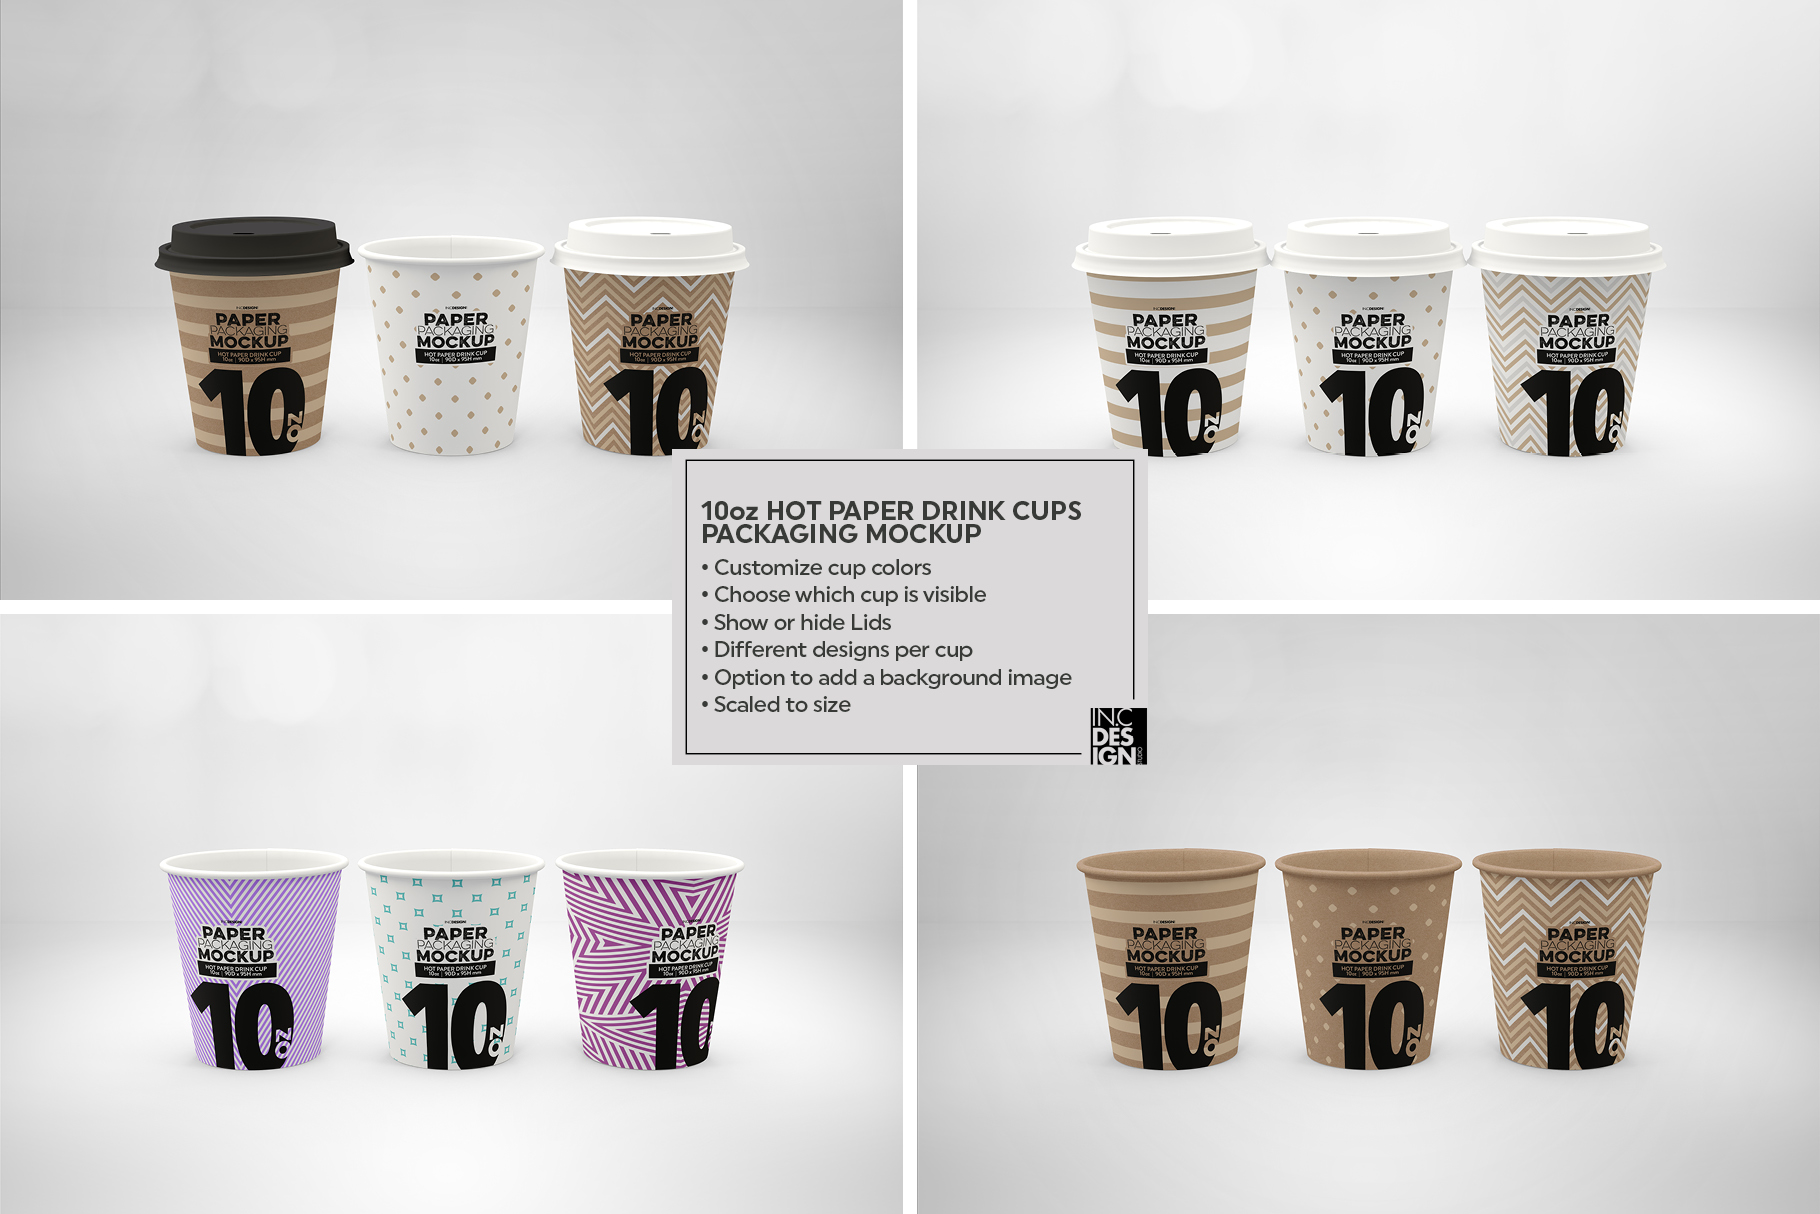 Paper Hot Drink Cups Packaging Mockup example image 16